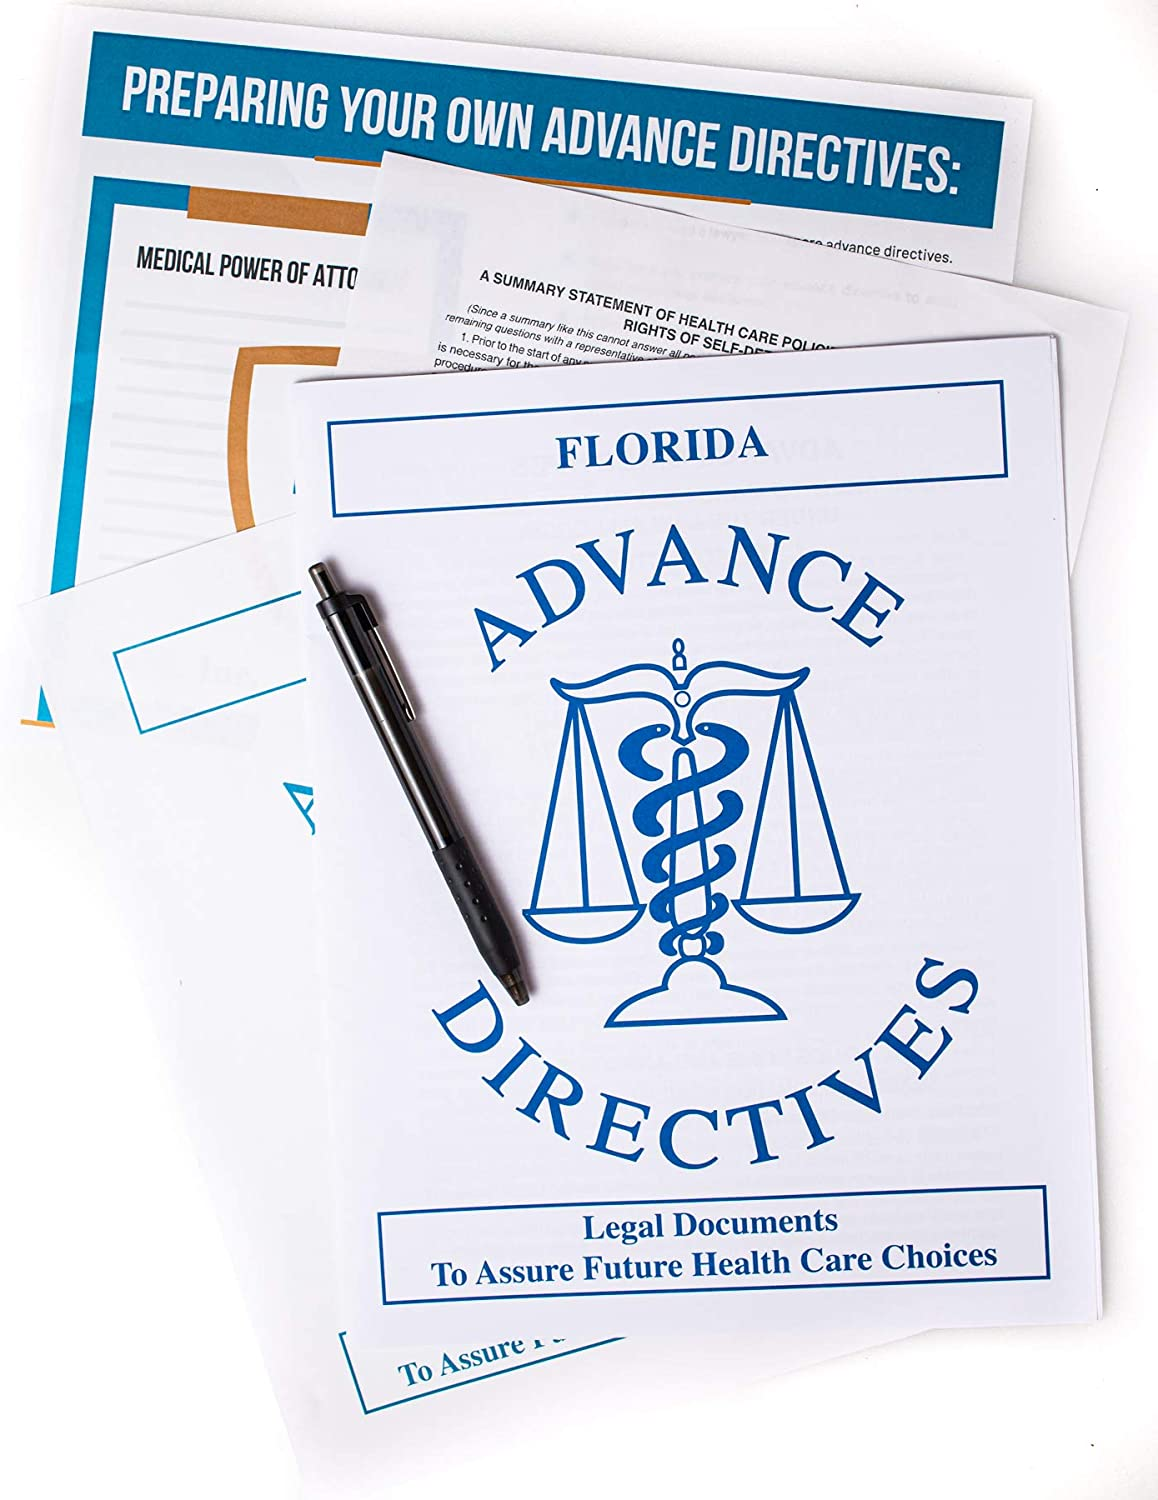 Kit Includes Two Florida (or TX, CA, NY) Living Wills, Advance Directives to Physicians and Florida Medical Power of Attorney Legal Forms, Bonus Infographic and Papermate Pen